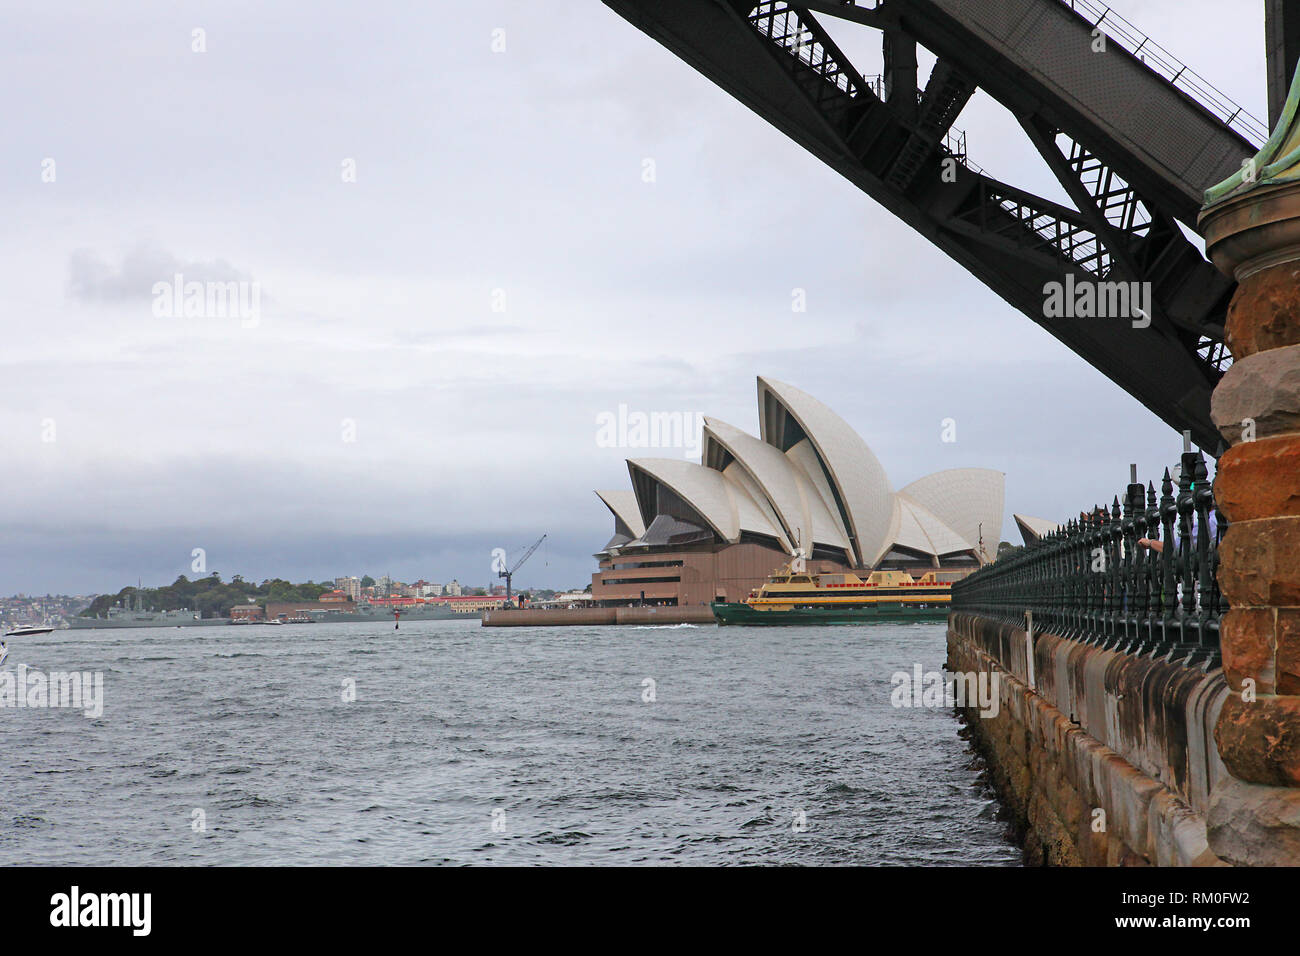 Visiter l'Australie. Les Scenic de l'Australie. Sydney Harbour Bridge Photo Stock